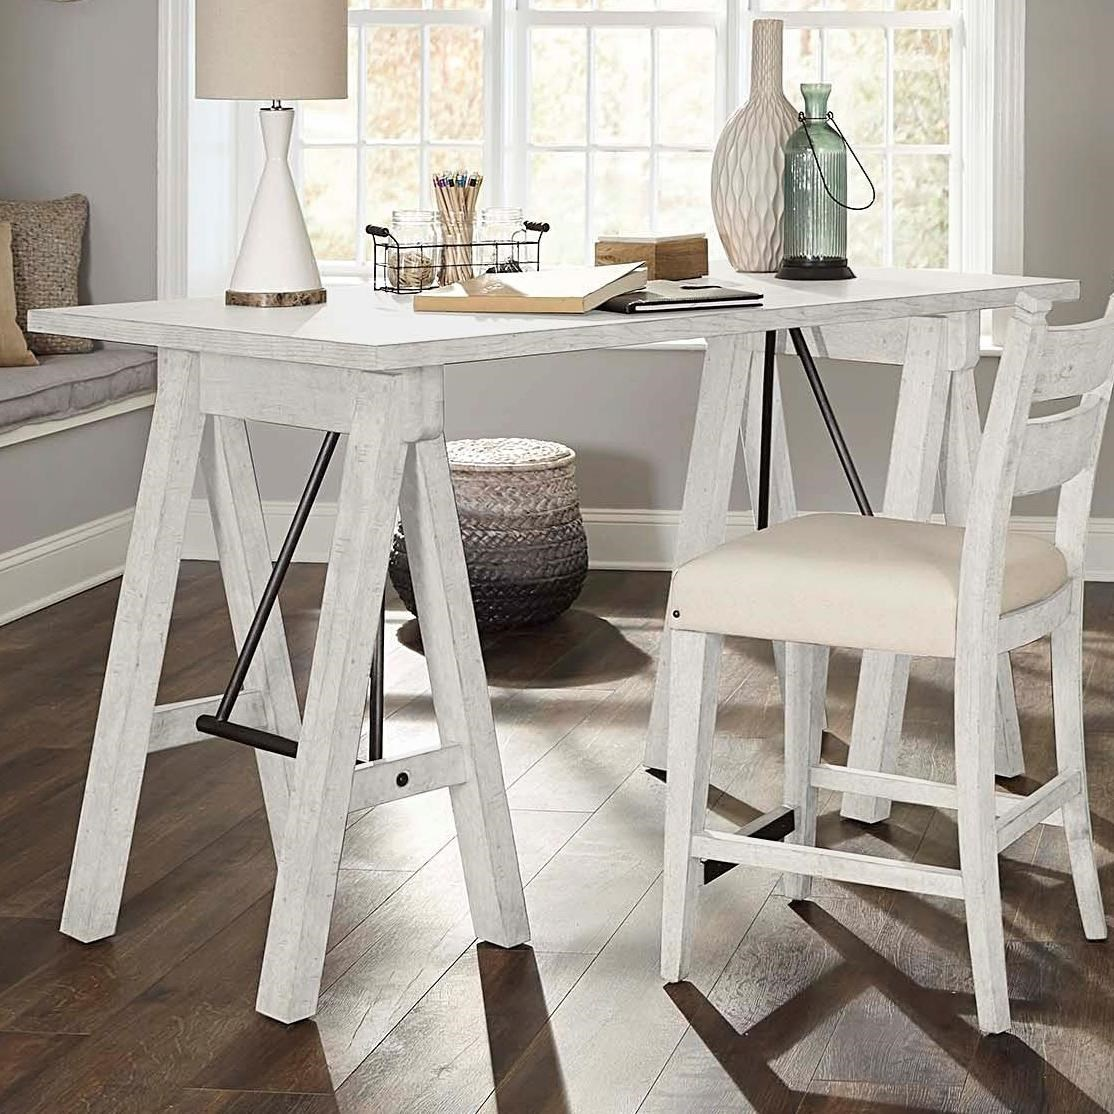 Coming Home Dreamer Desk by Trisha Yearwood Home Collection by Klaussner at Johnny Janosik